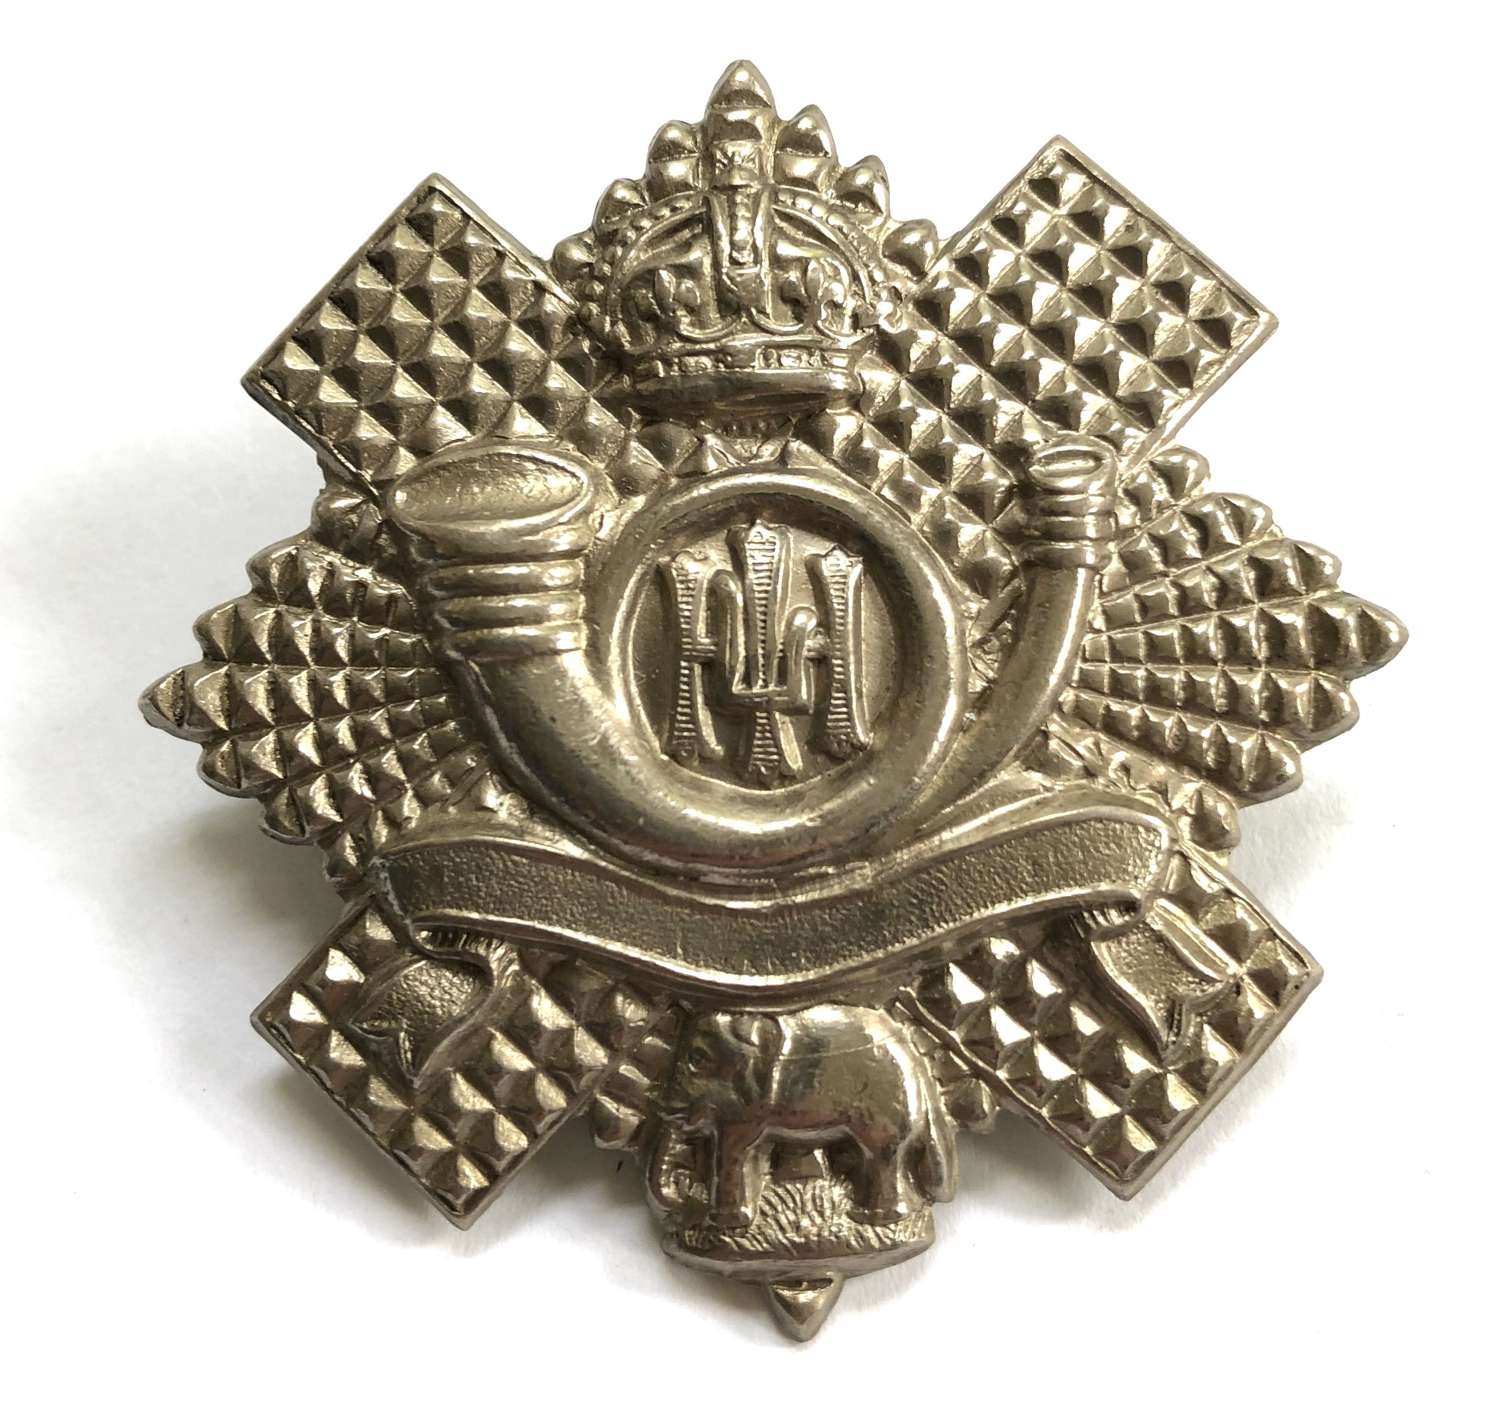 Highland Light Infantry 5th, 7th and 8th Bns. HLI glengarry badge